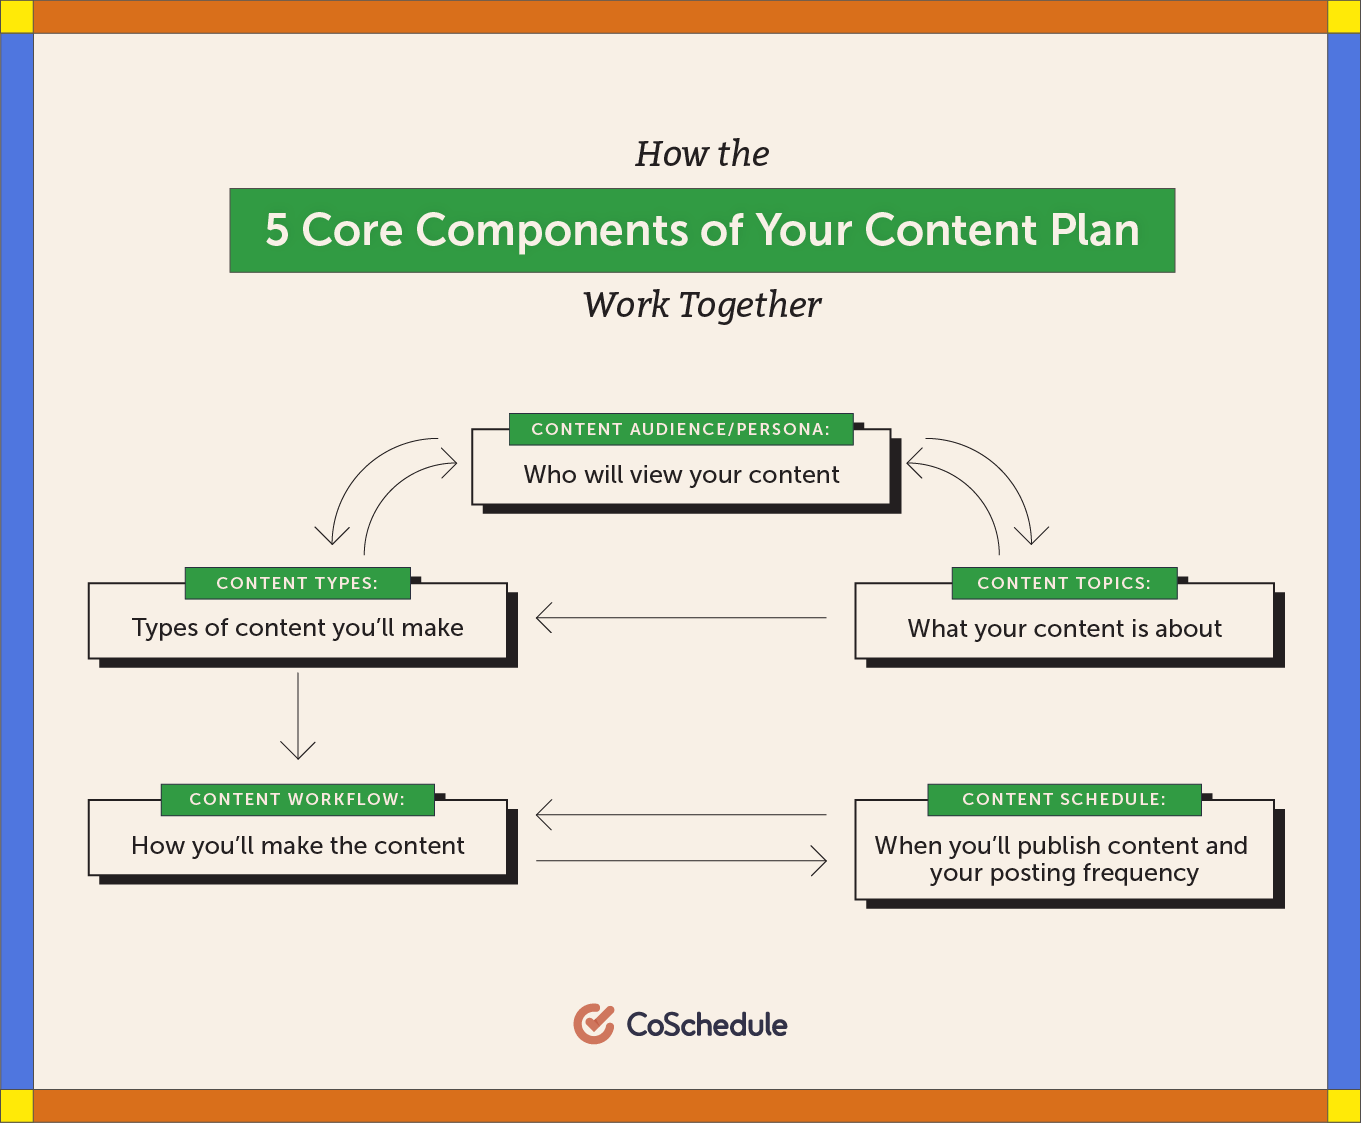 5 core components of your content plan